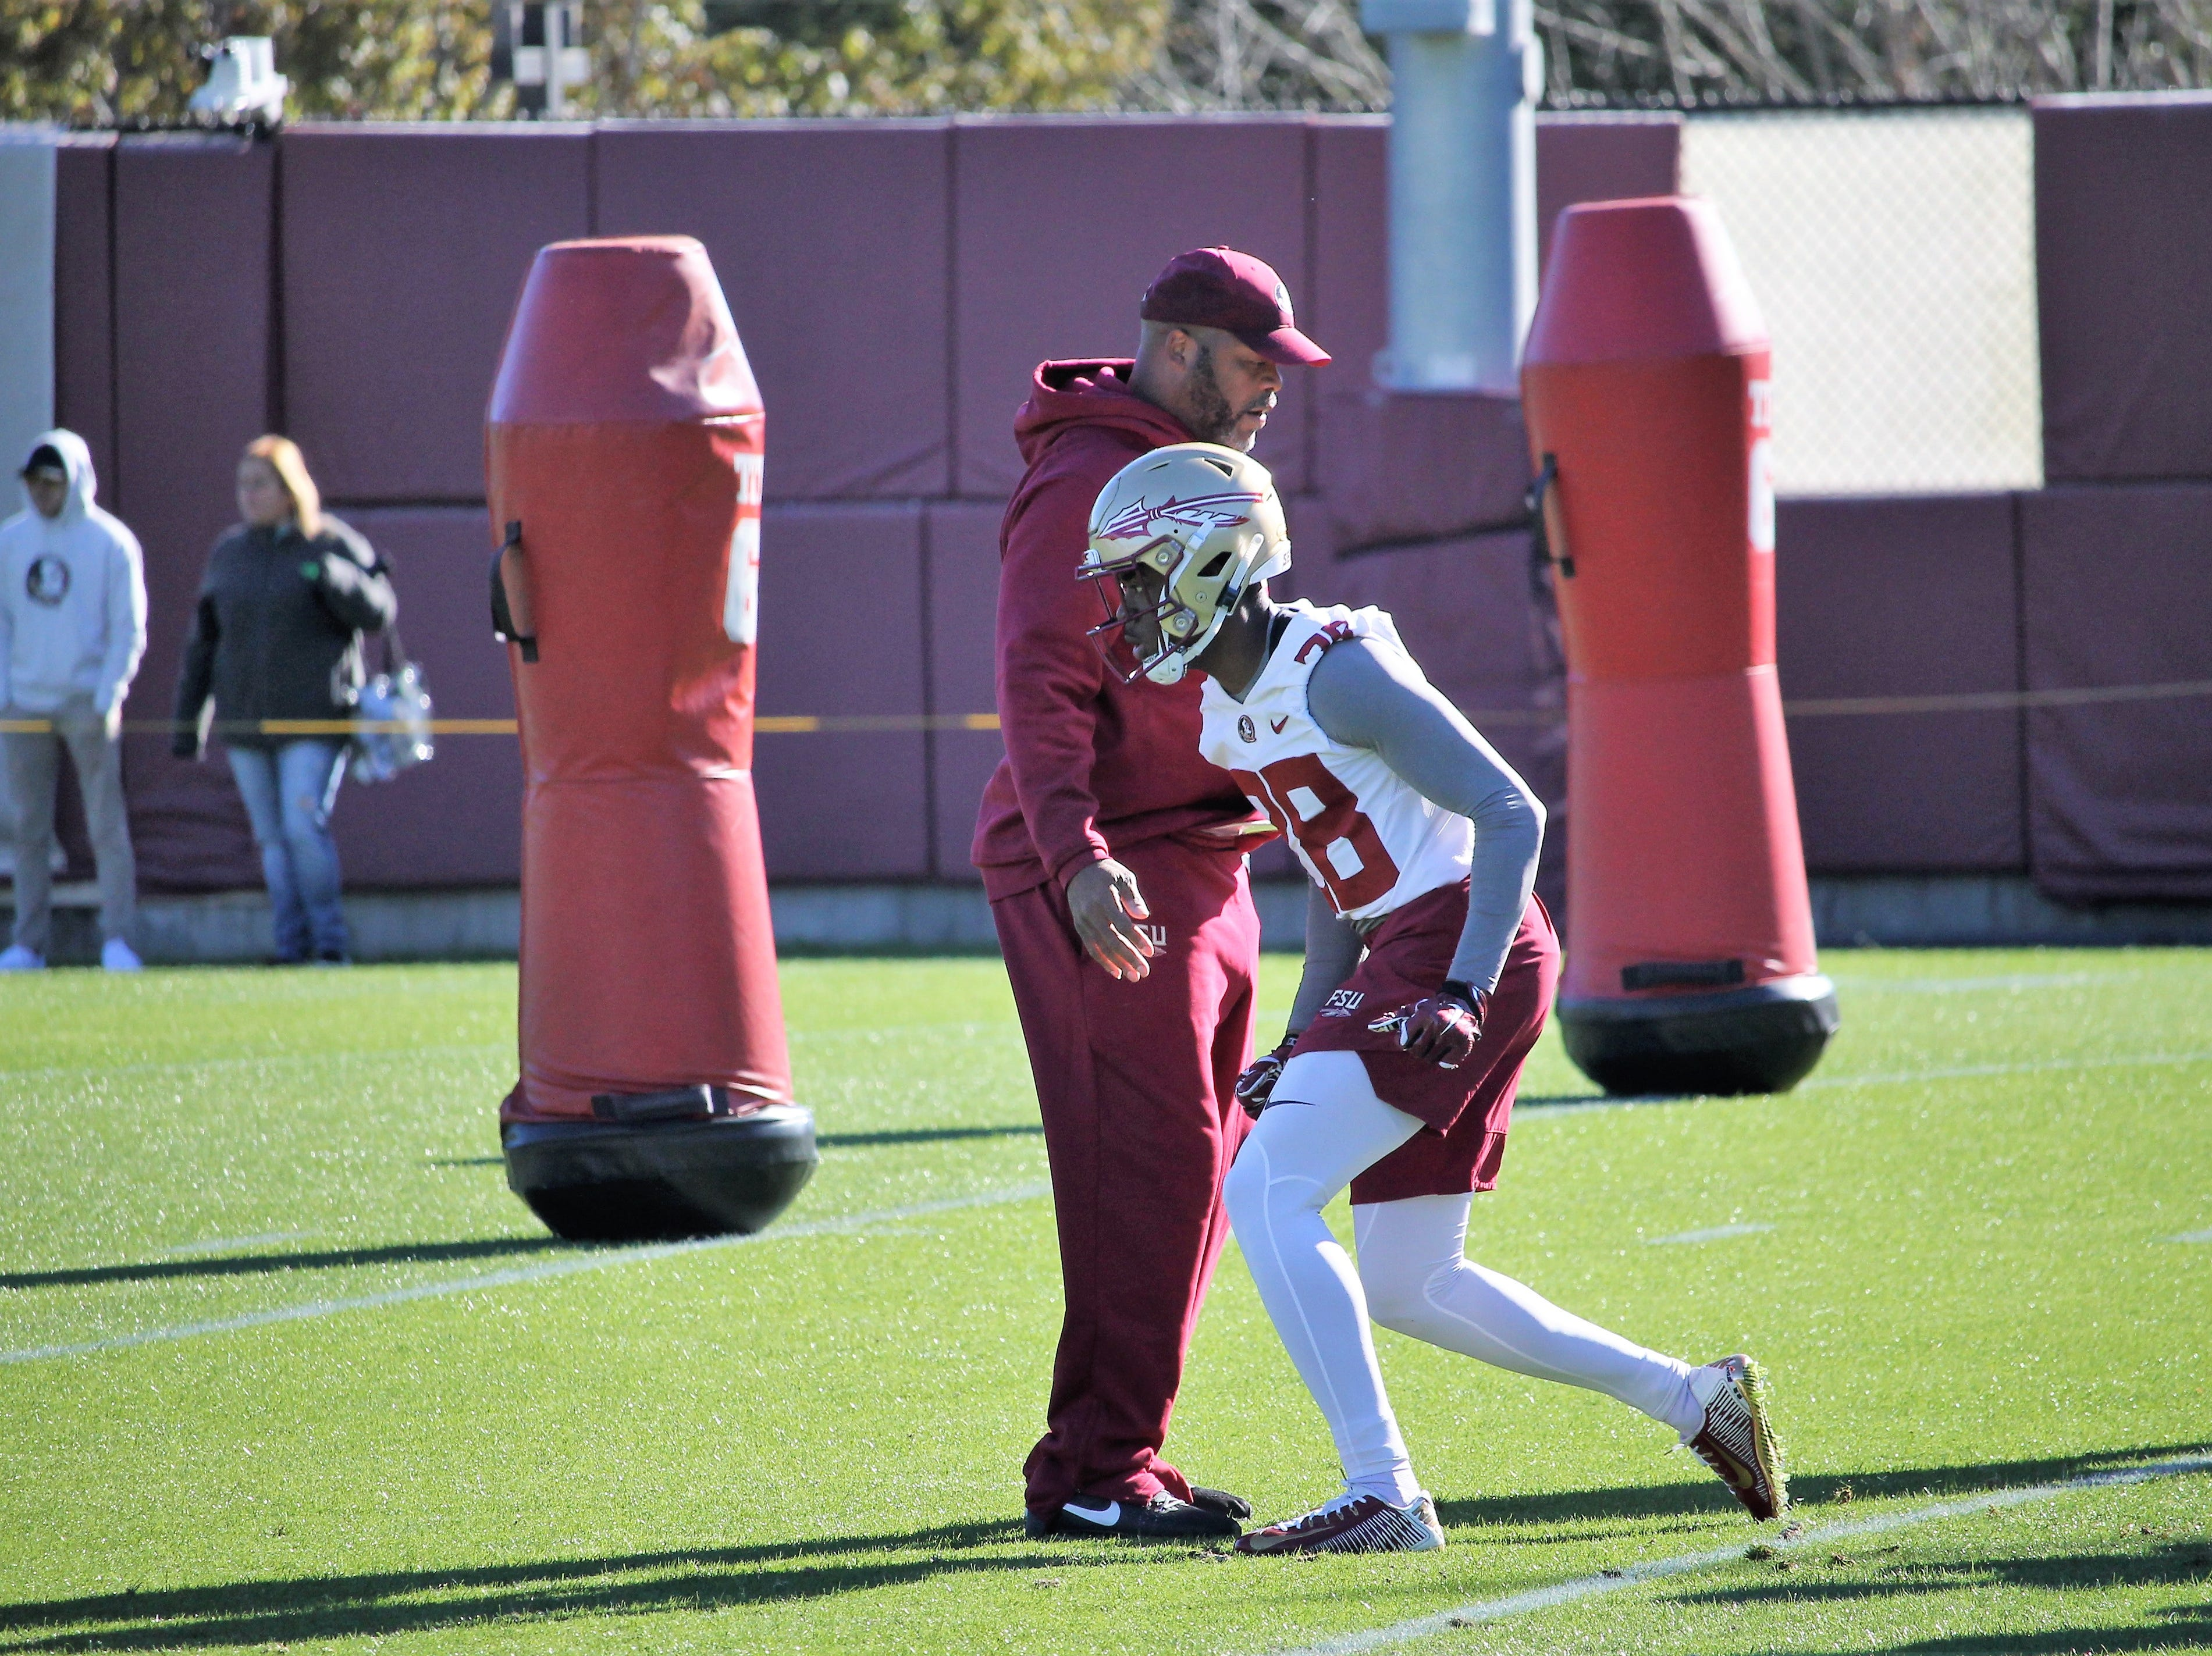 Wide receiver D'Marcus Adams at FSU football practice on March 6, 2019.